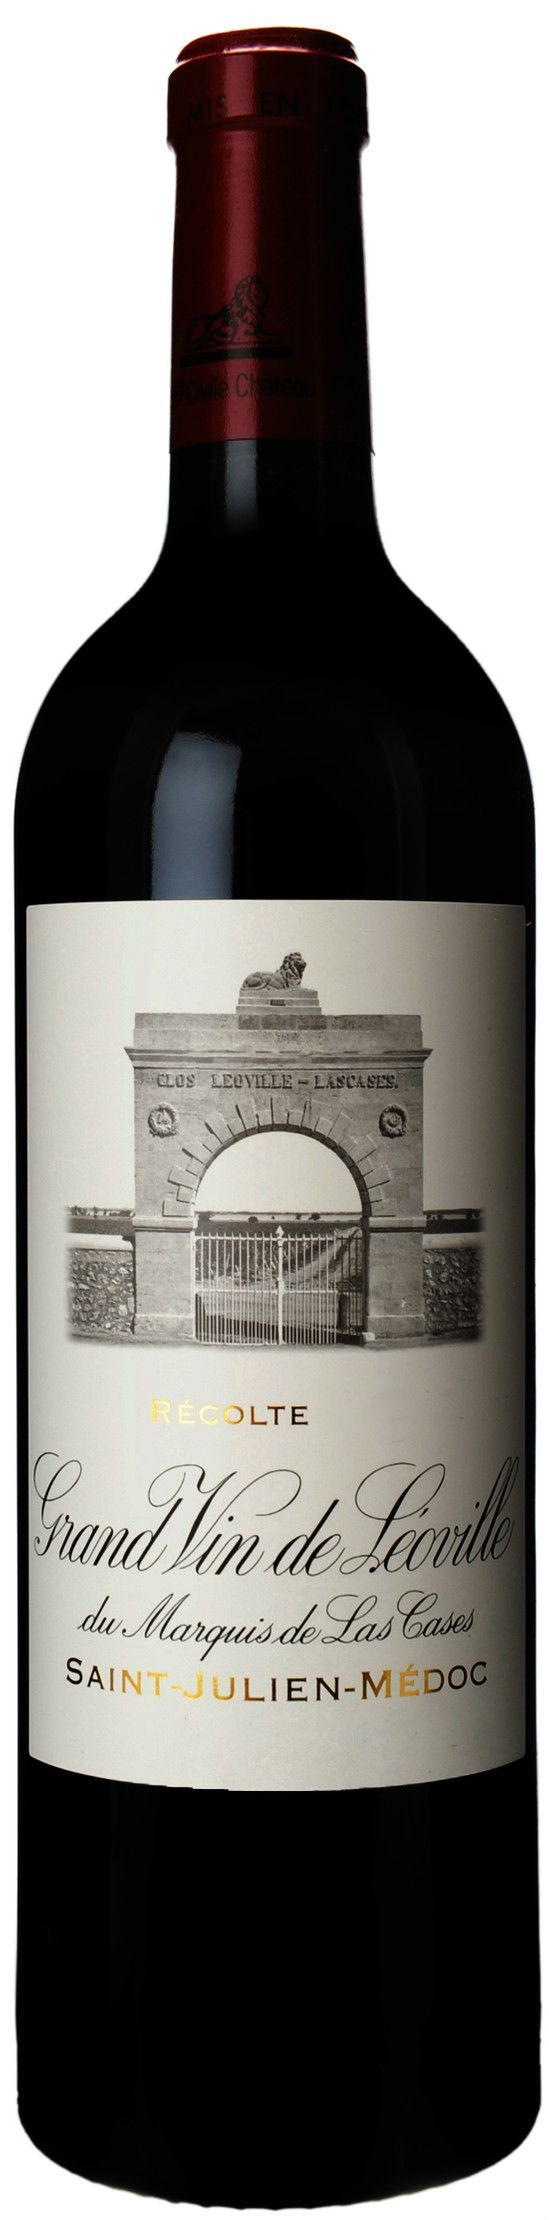 Chateau Leoville Las Cases, 2002